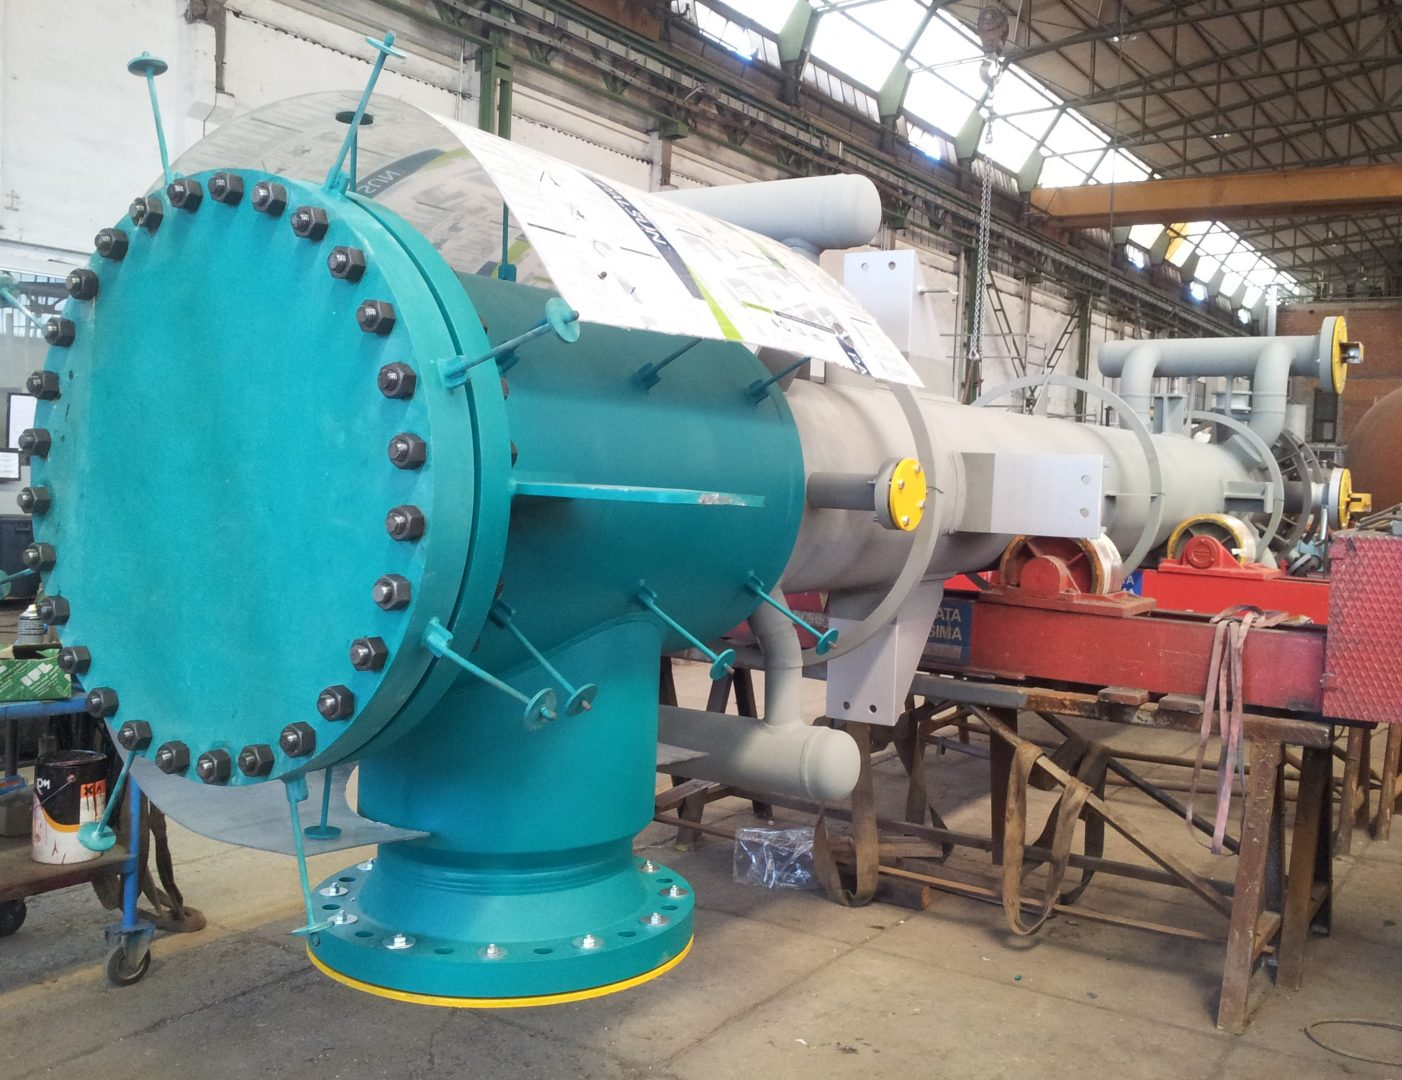 Vertical Process Gas Boiler in SA 516 Gr.70 / SA 387 Gr.11 Cl.2 at Daura Refinery – Size: 3.470 x 780 mm; 8 t – Bagdad, Iraq